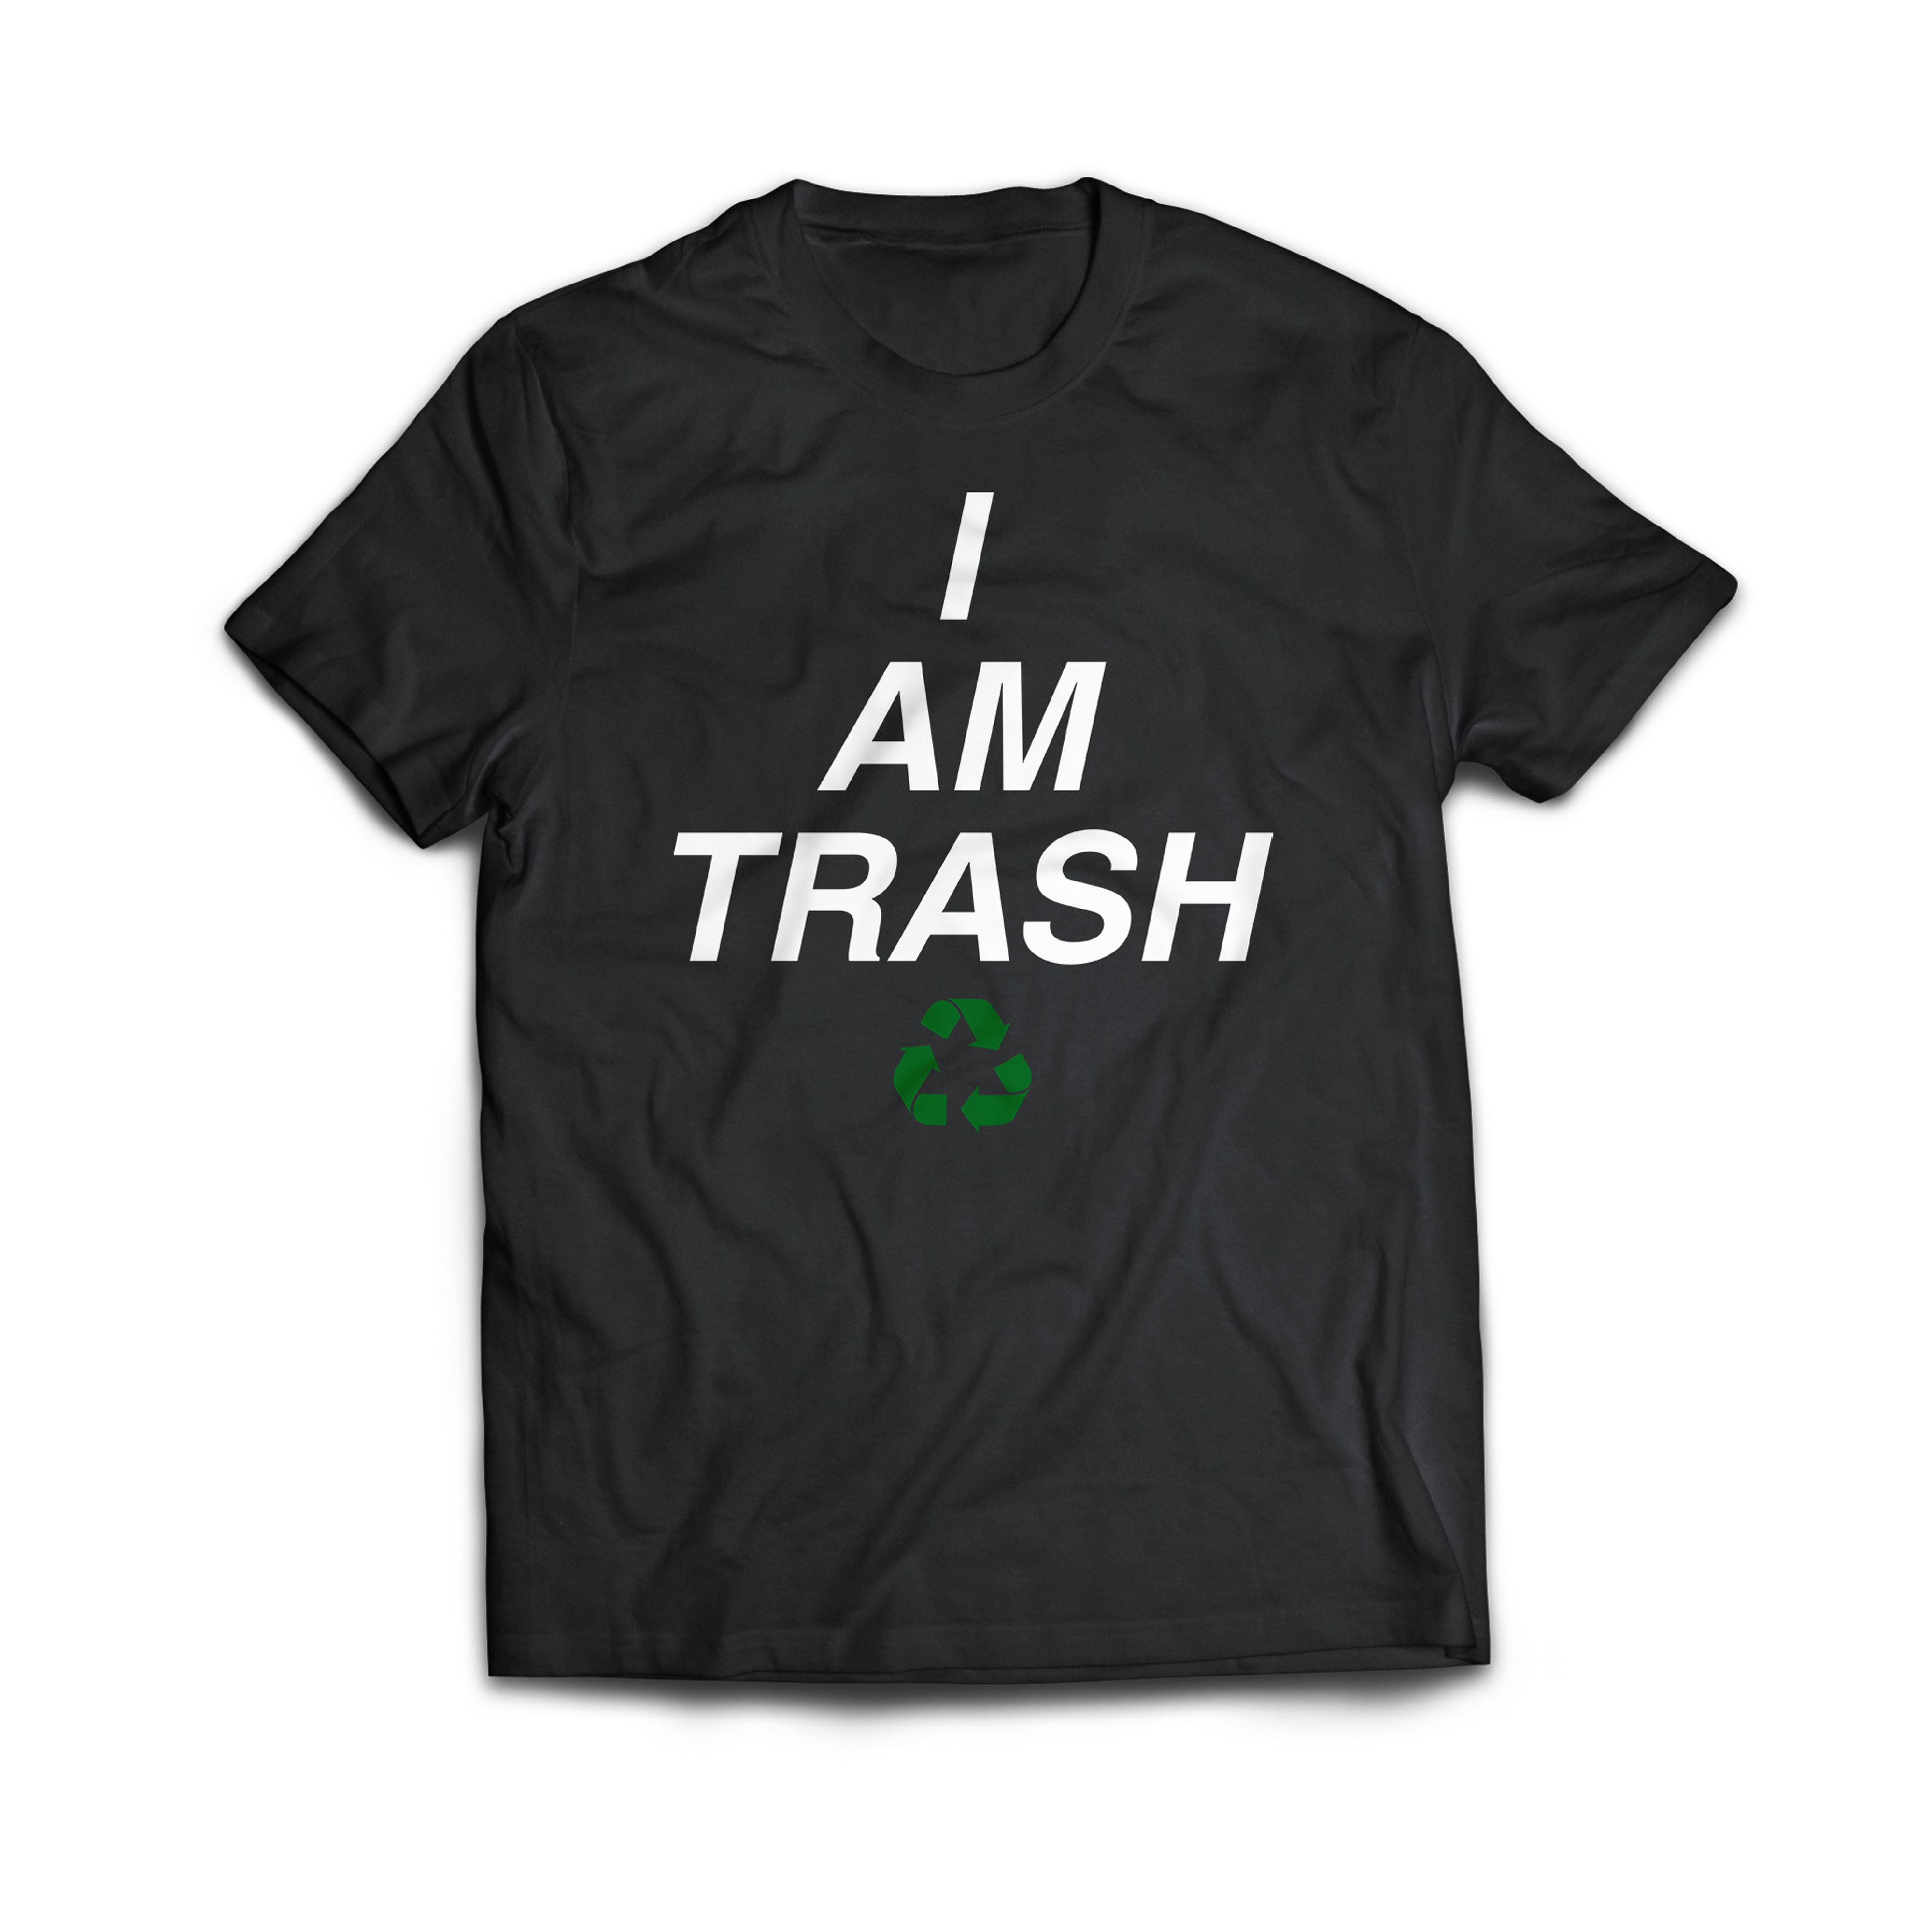 I AM TRASH [T-SHIRT] - TRASH